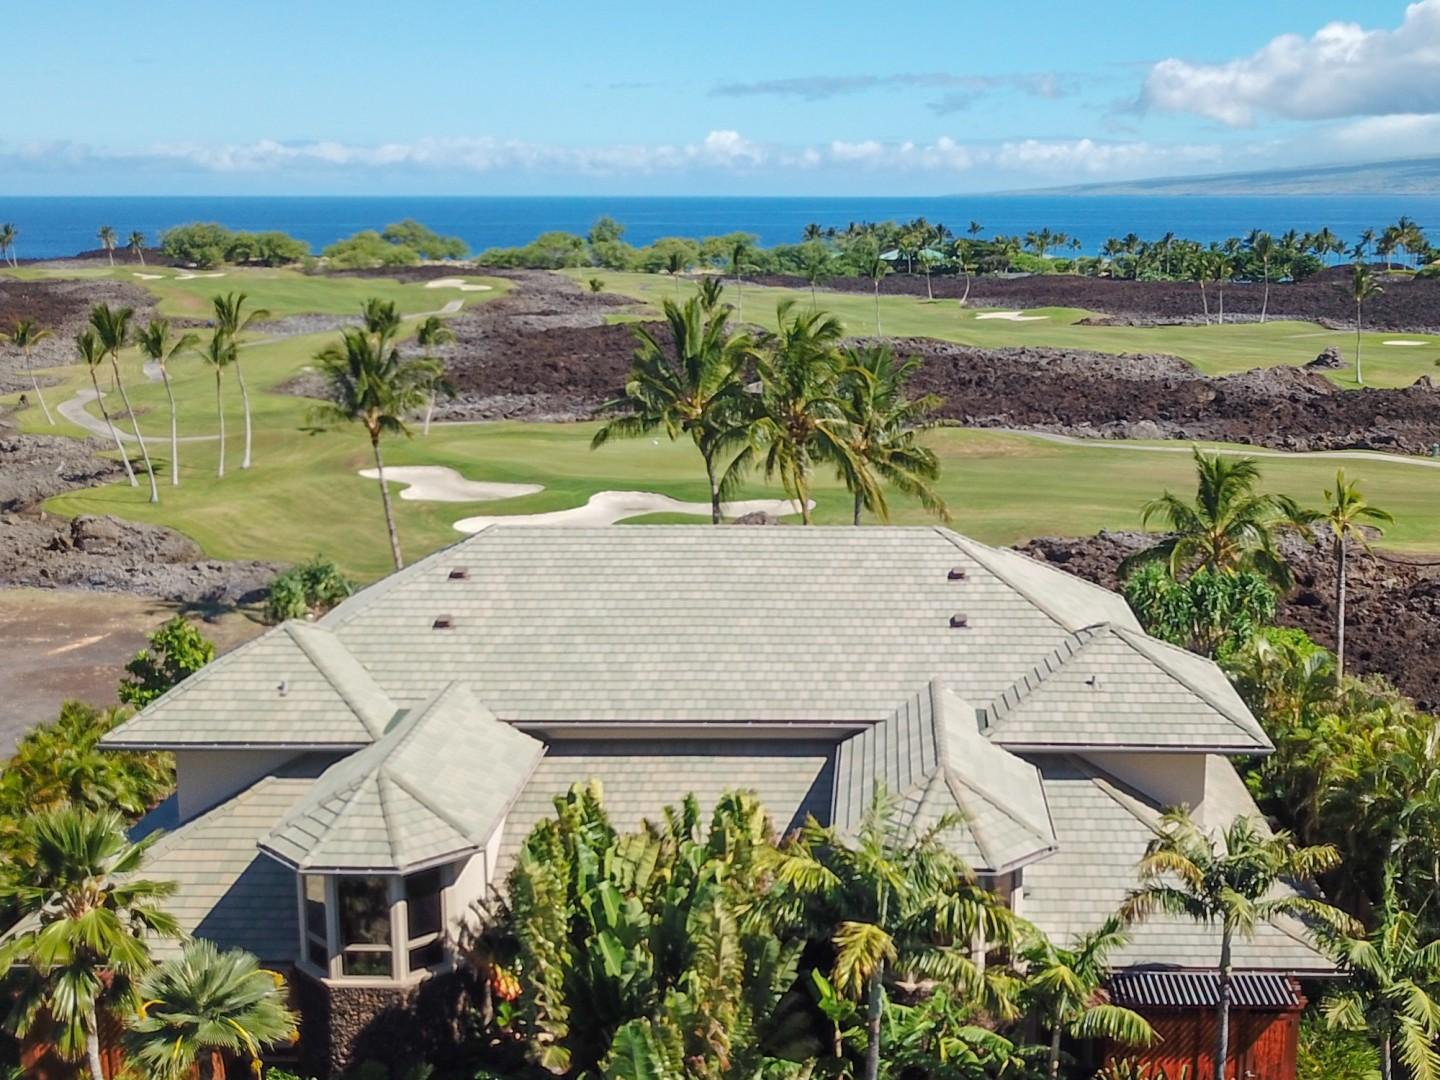 House Surrounded by the Manicured Greens of the Mauna Lani Course, just Minutes from the Ocean and Beach Club